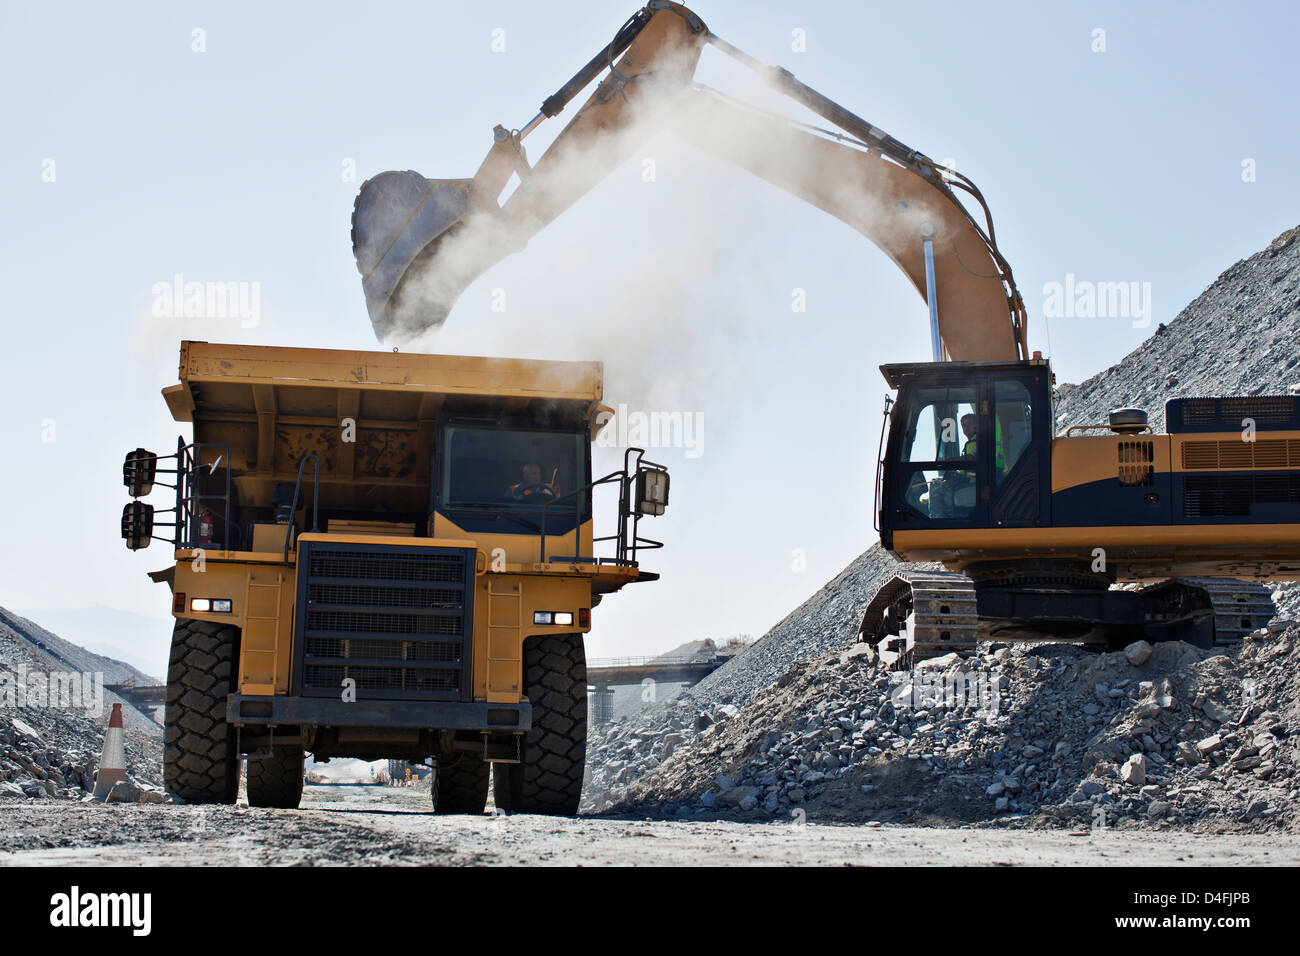 Digger and truck working in quarry - Stock Image